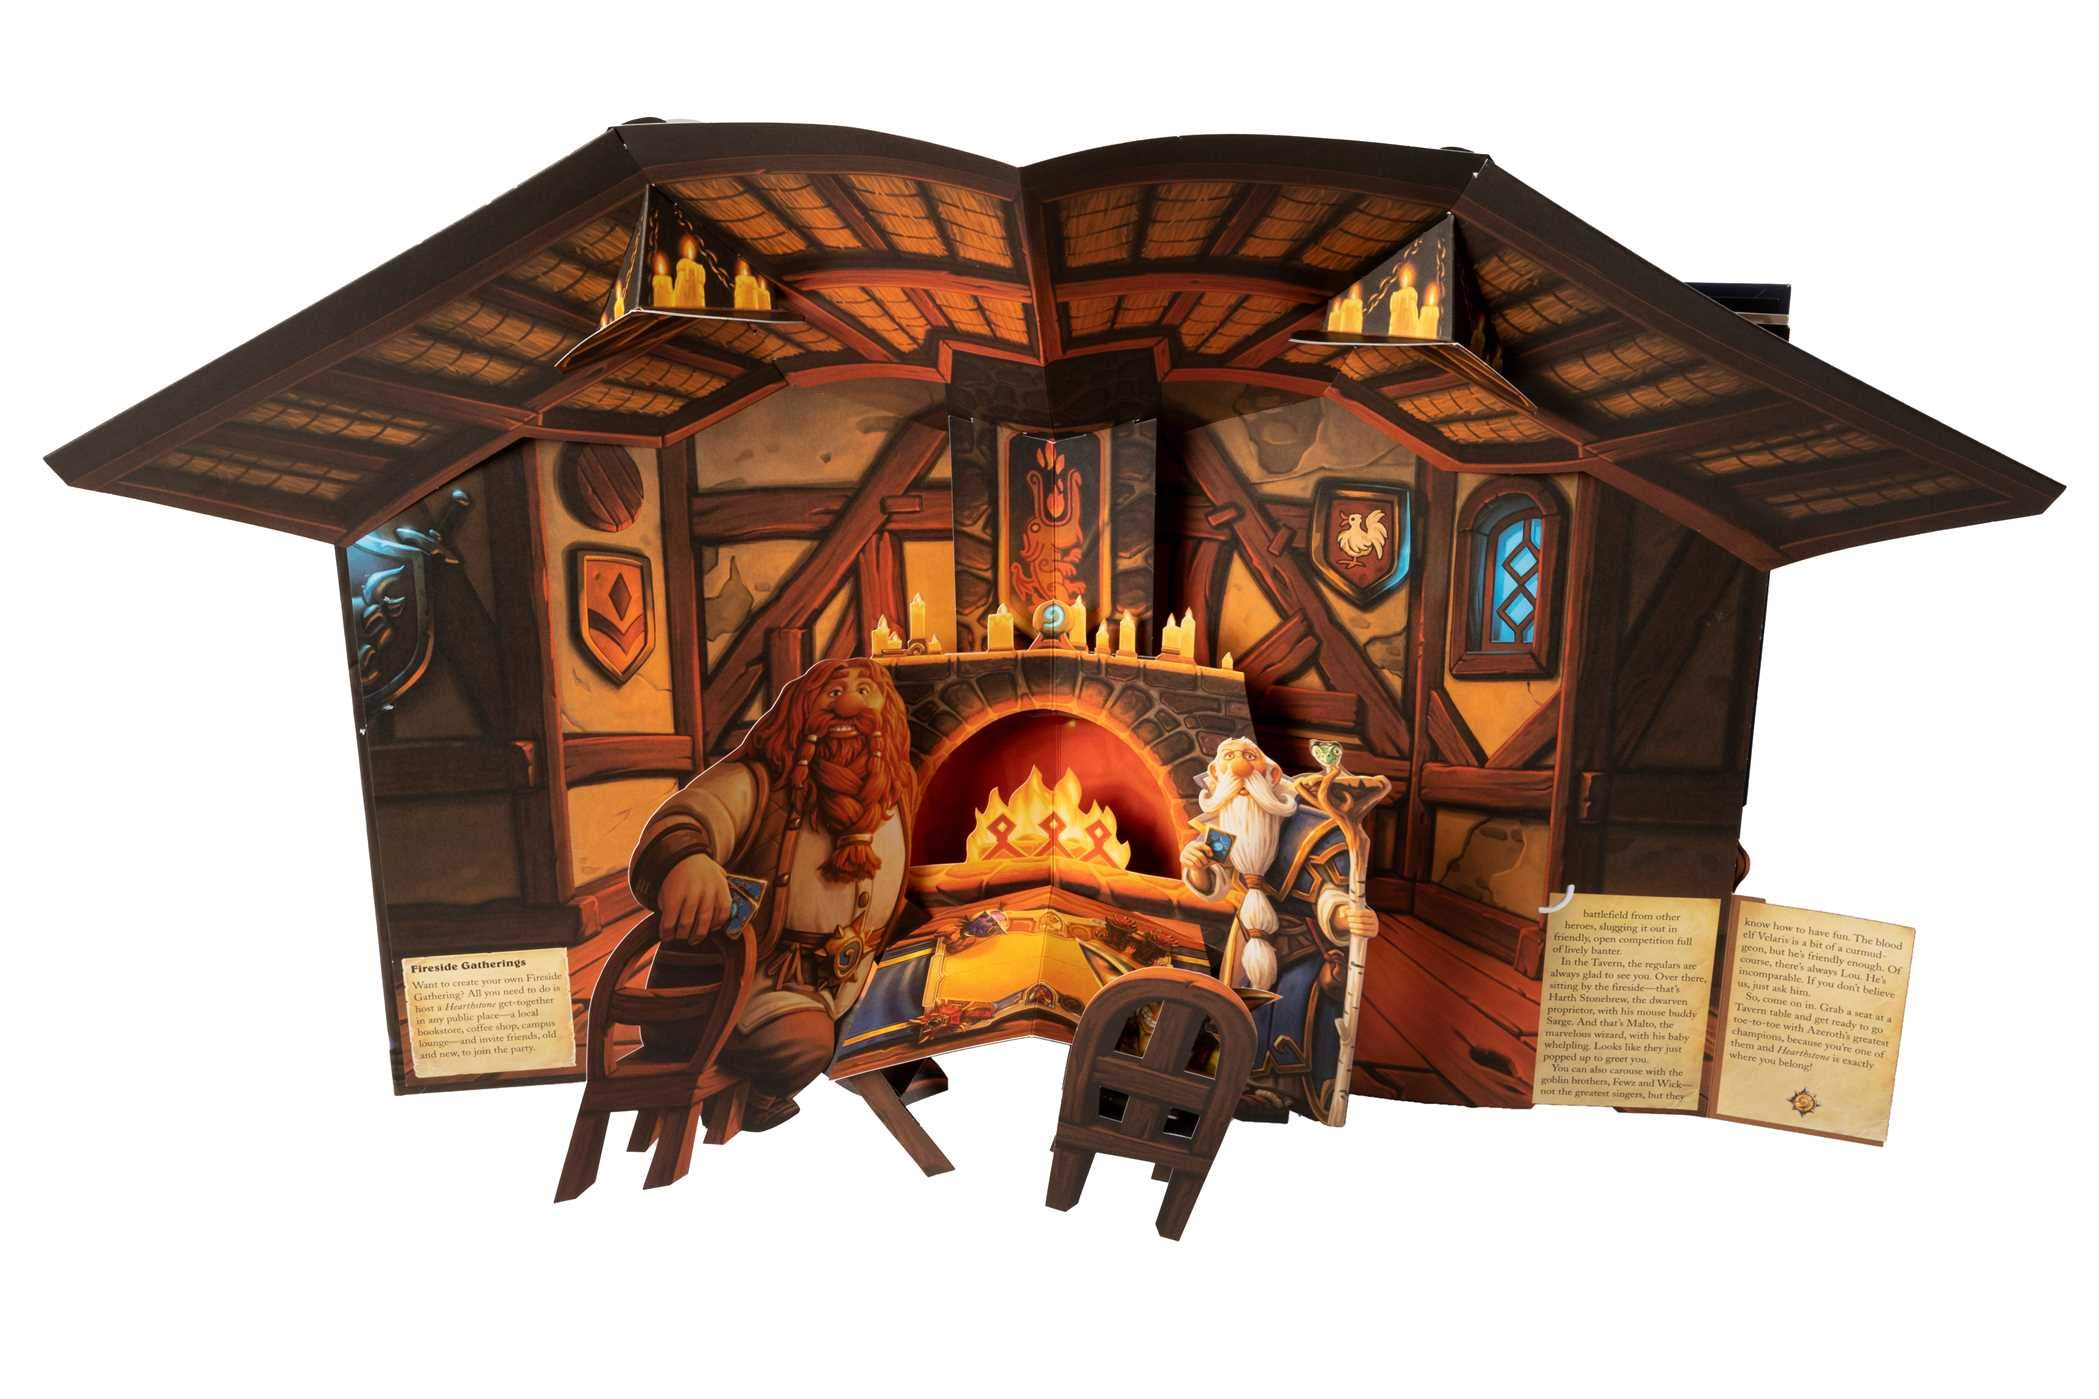 The Art of Hearthstone Arrives Next Week - Limited Edition